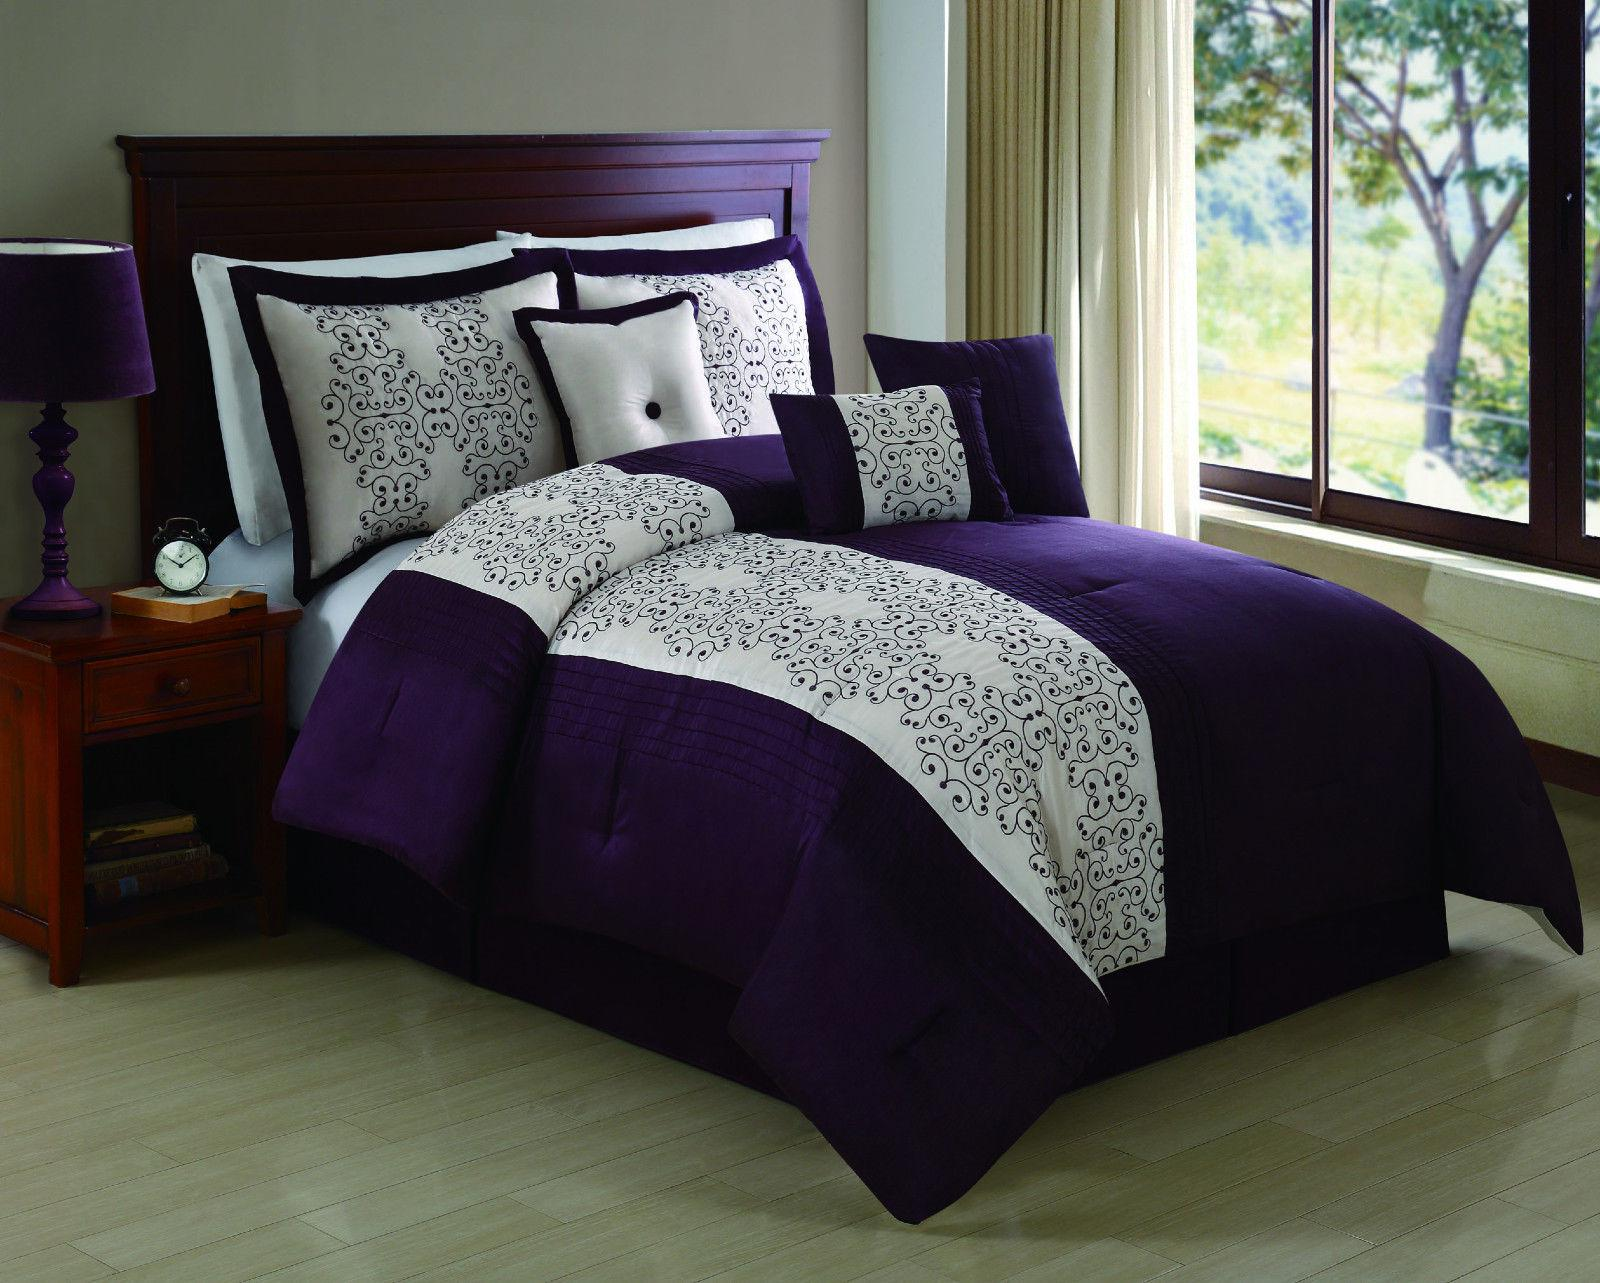 Purple Queen Comforter Sets | Purple Comforter Sets | Full Size Purple Comforter Sets